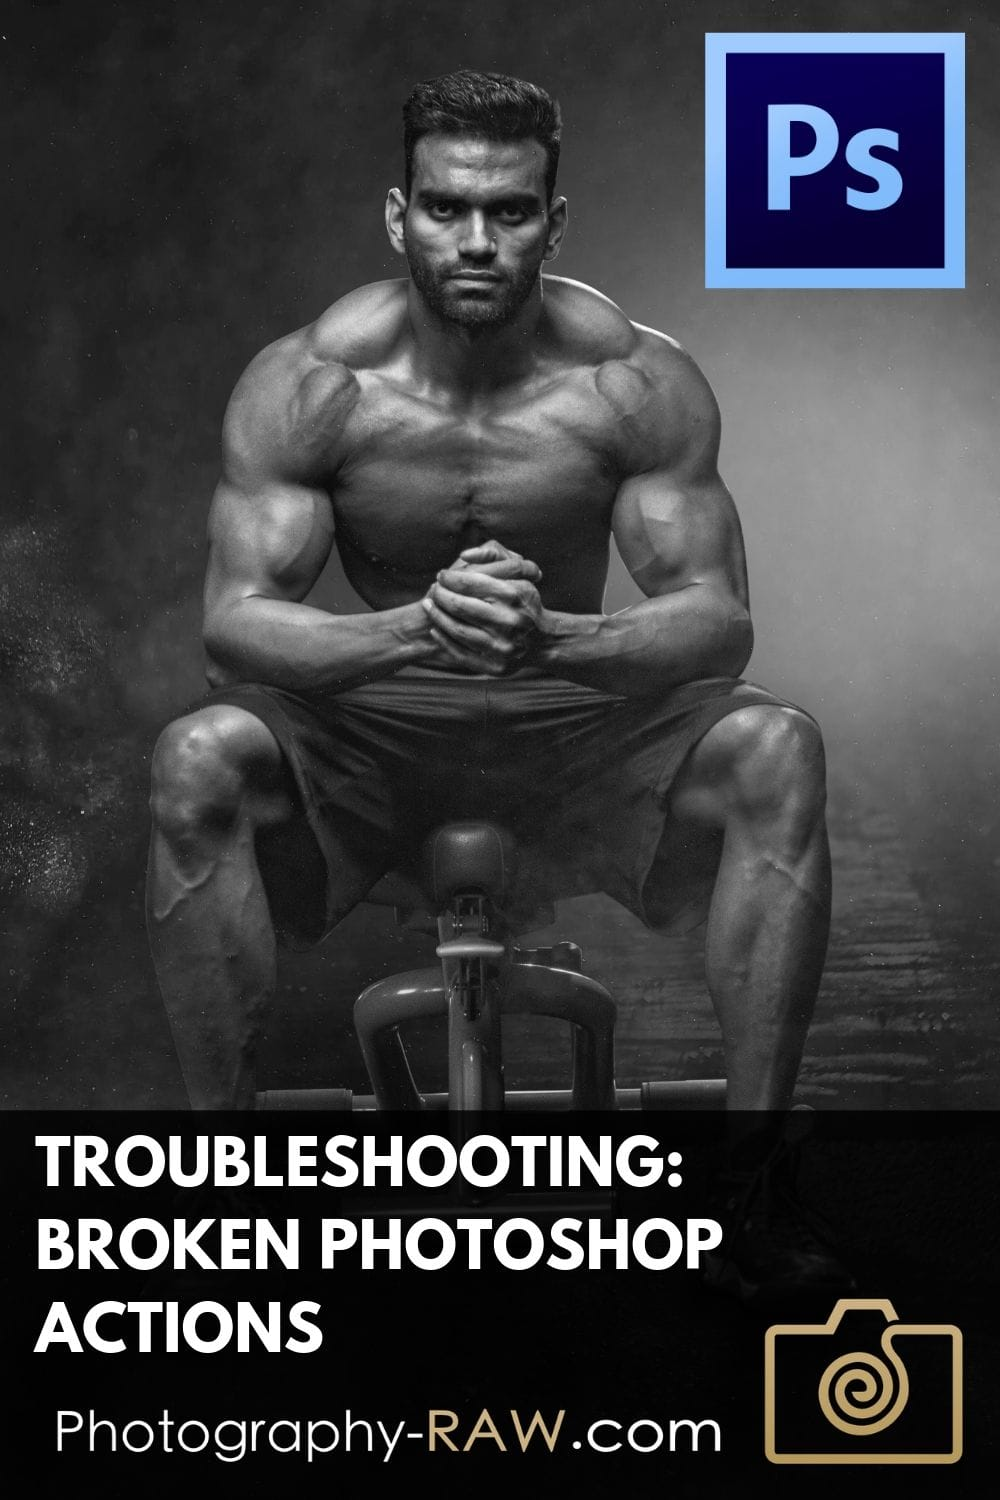 Photoshop Actions Not Working: Troubleshooting